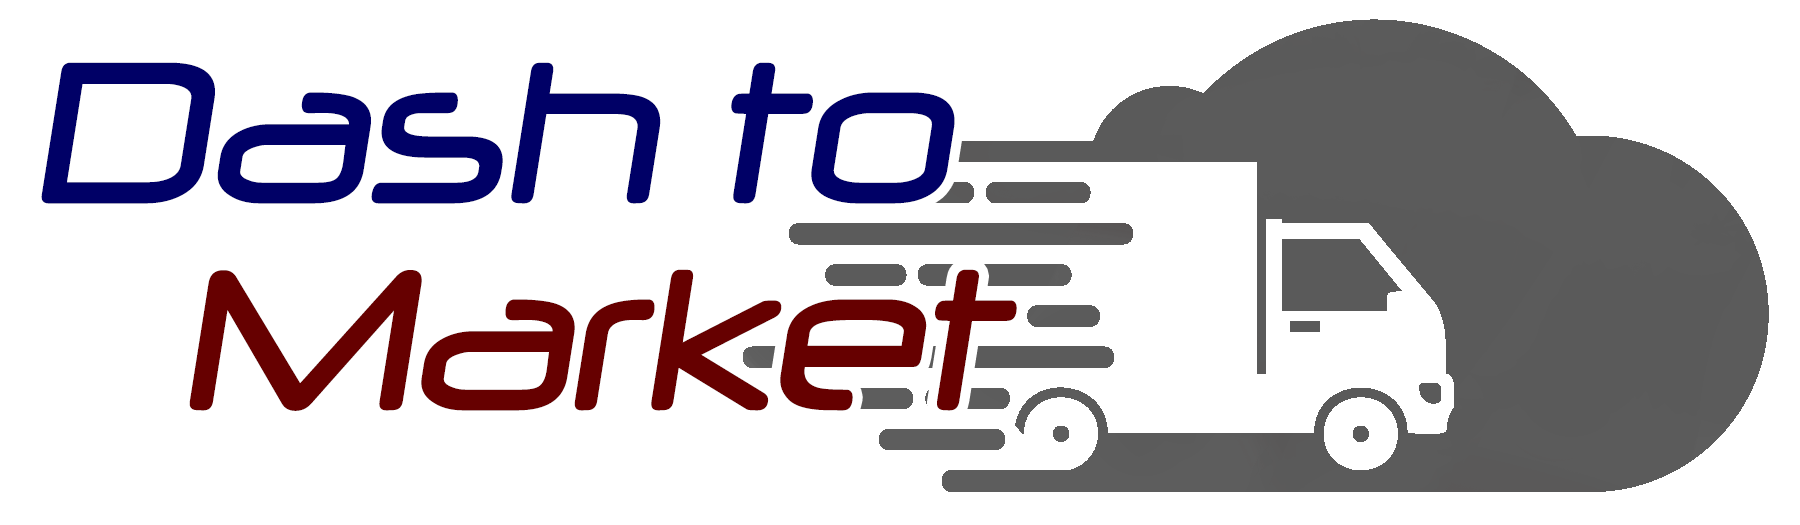 Dash to Market